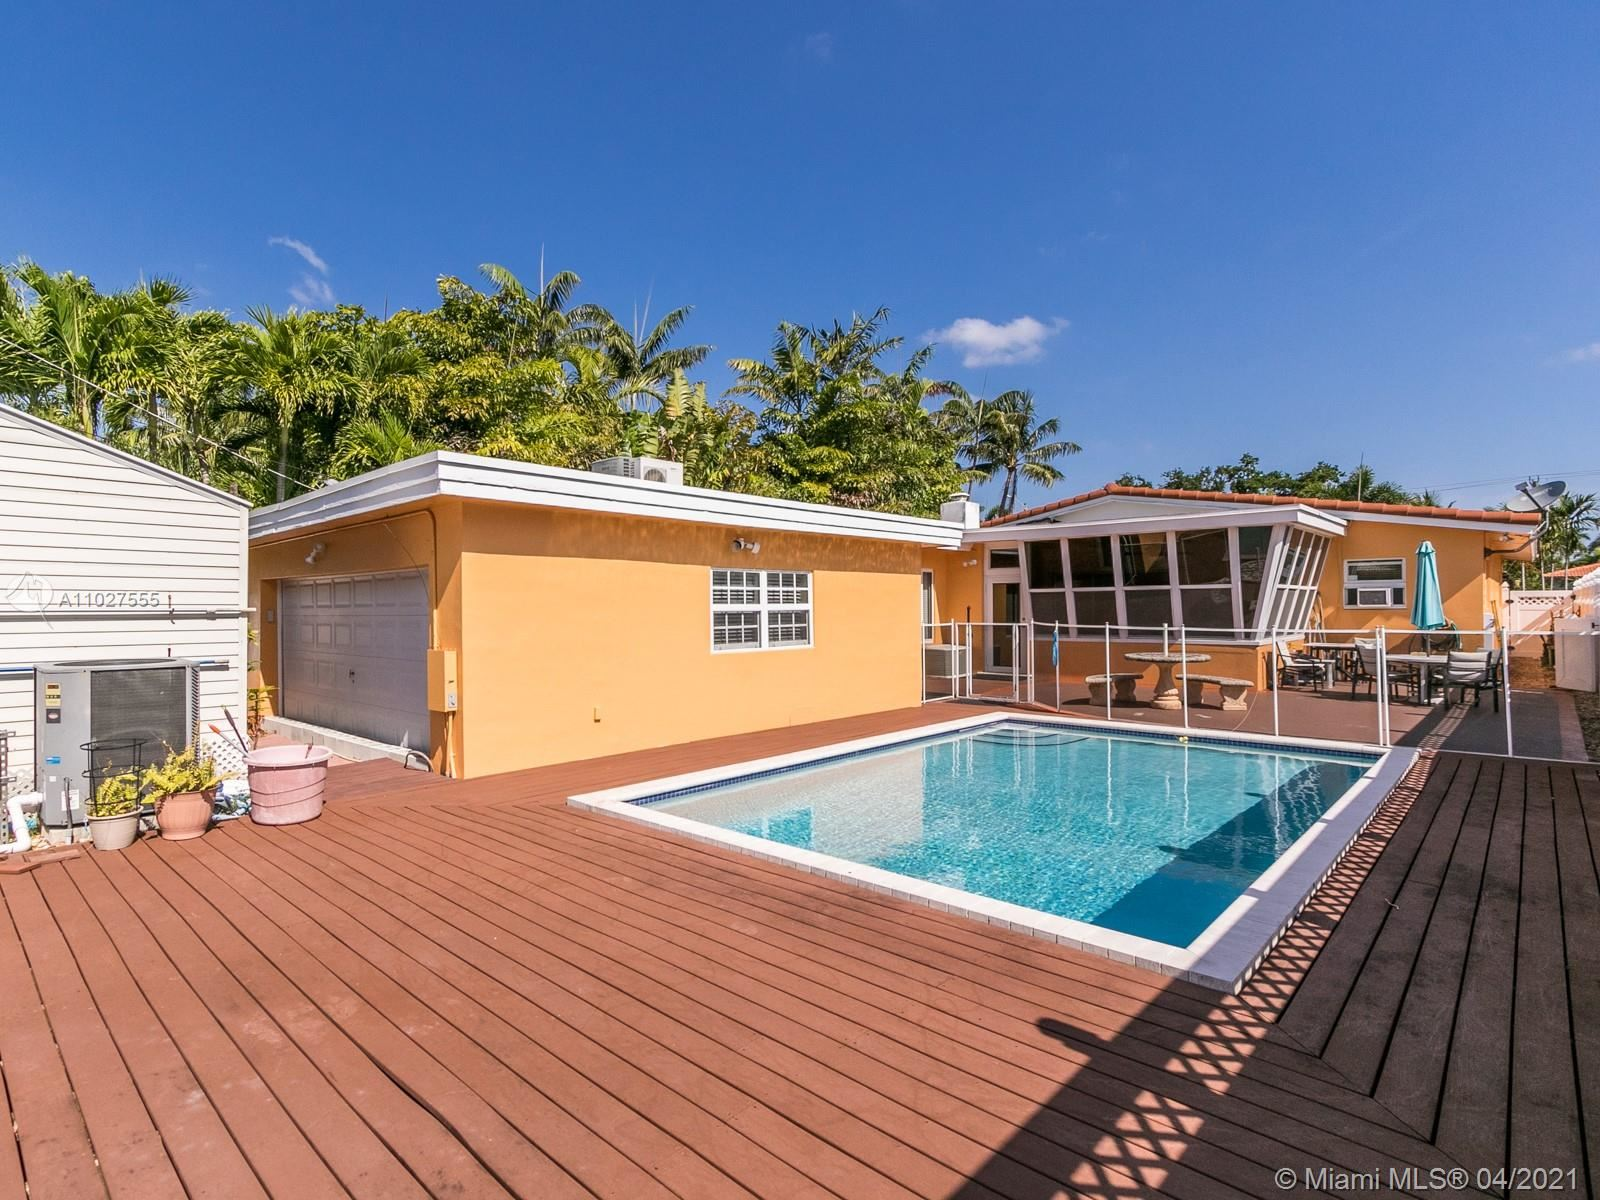 1430 Washington St, Hollywood, FL 33020 - #: A11027555